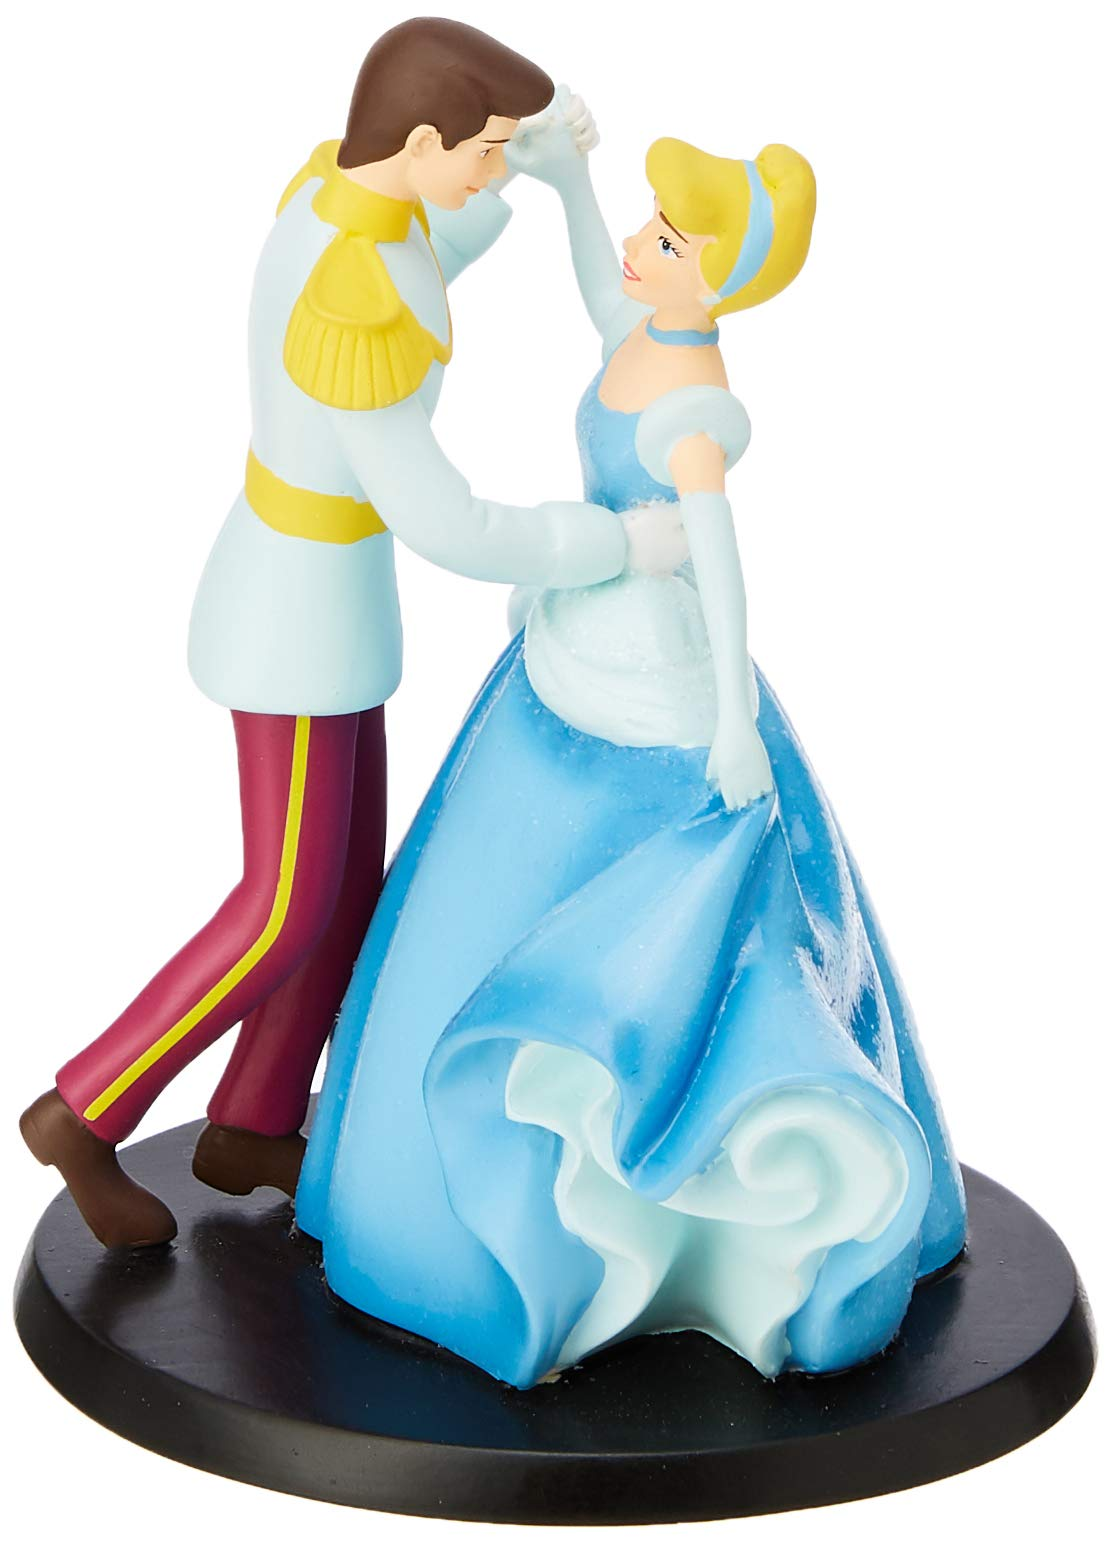 Enchanting Disney Cinderella Wedding Cake Topper